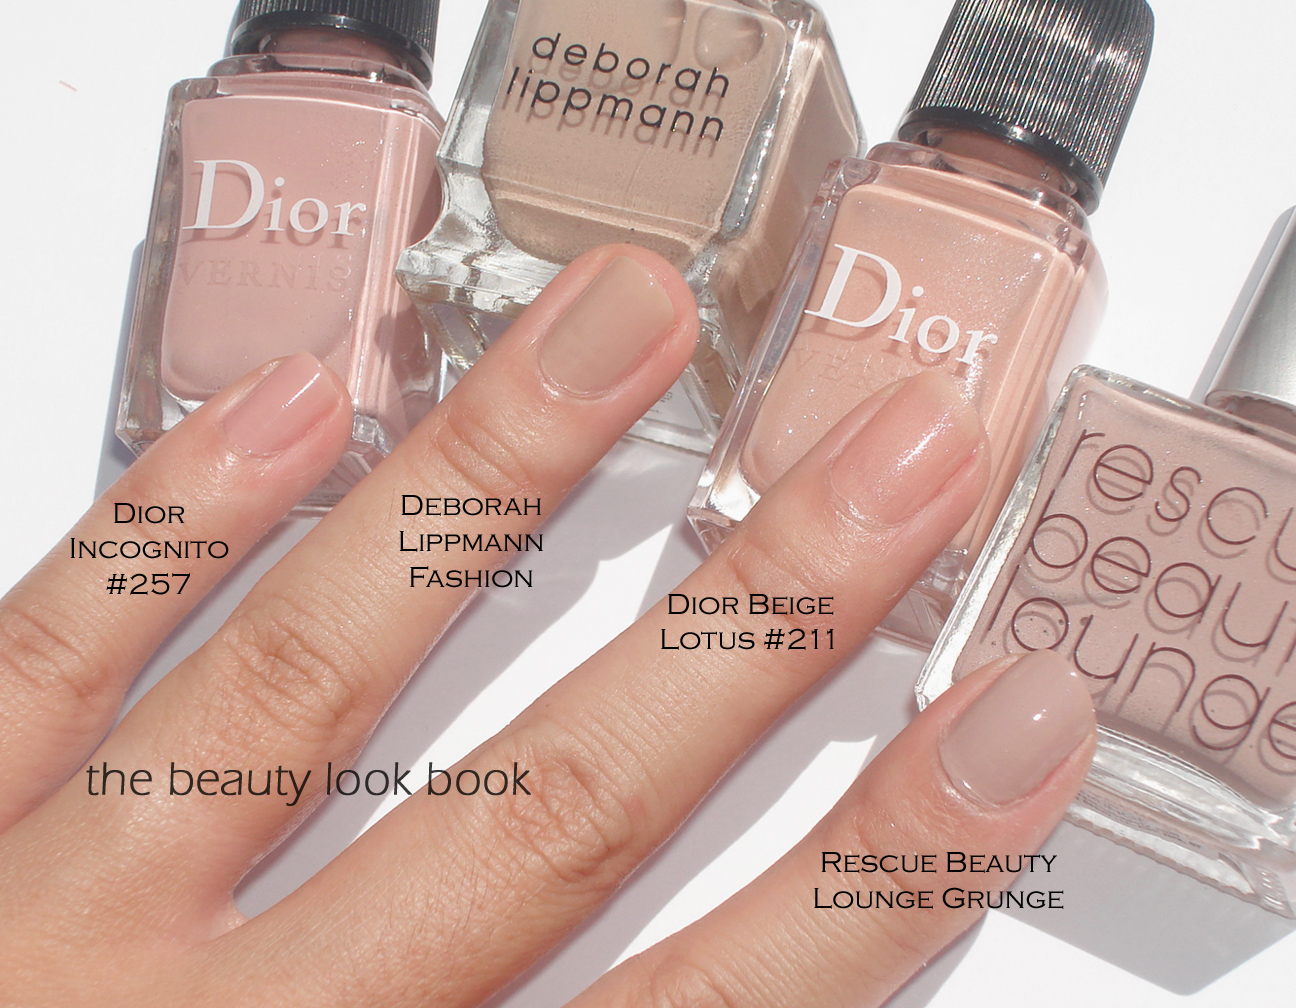 Deborah Lippmann Archives | Page 3 of 4 | The Beauty Look Book